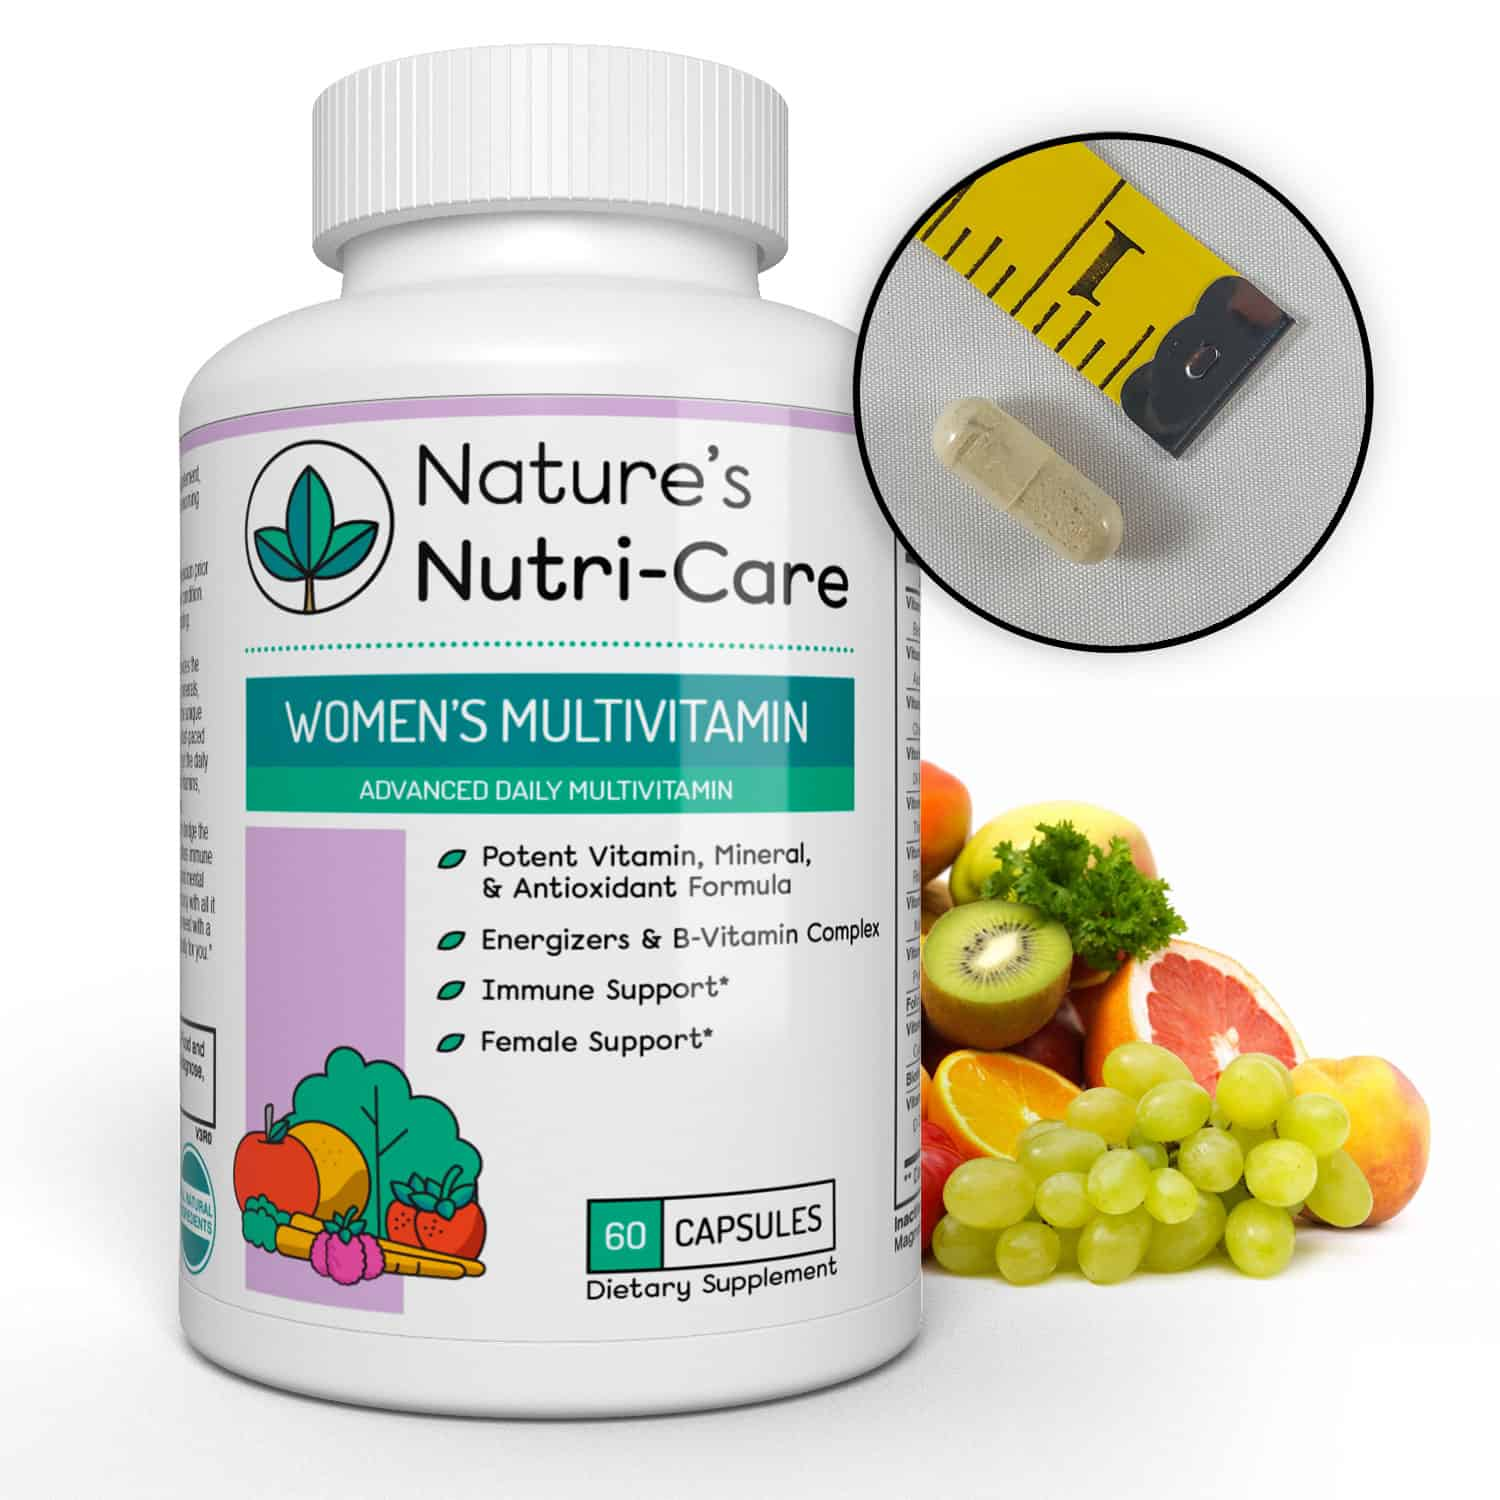 Nature's Nutri-Care Best Multivitamin for Women - 60 Capsules - Vitamins, Antioxidants, and Minerals - Complete Female Support Blend, Immune Blend, and Energy Blend - Made in USA